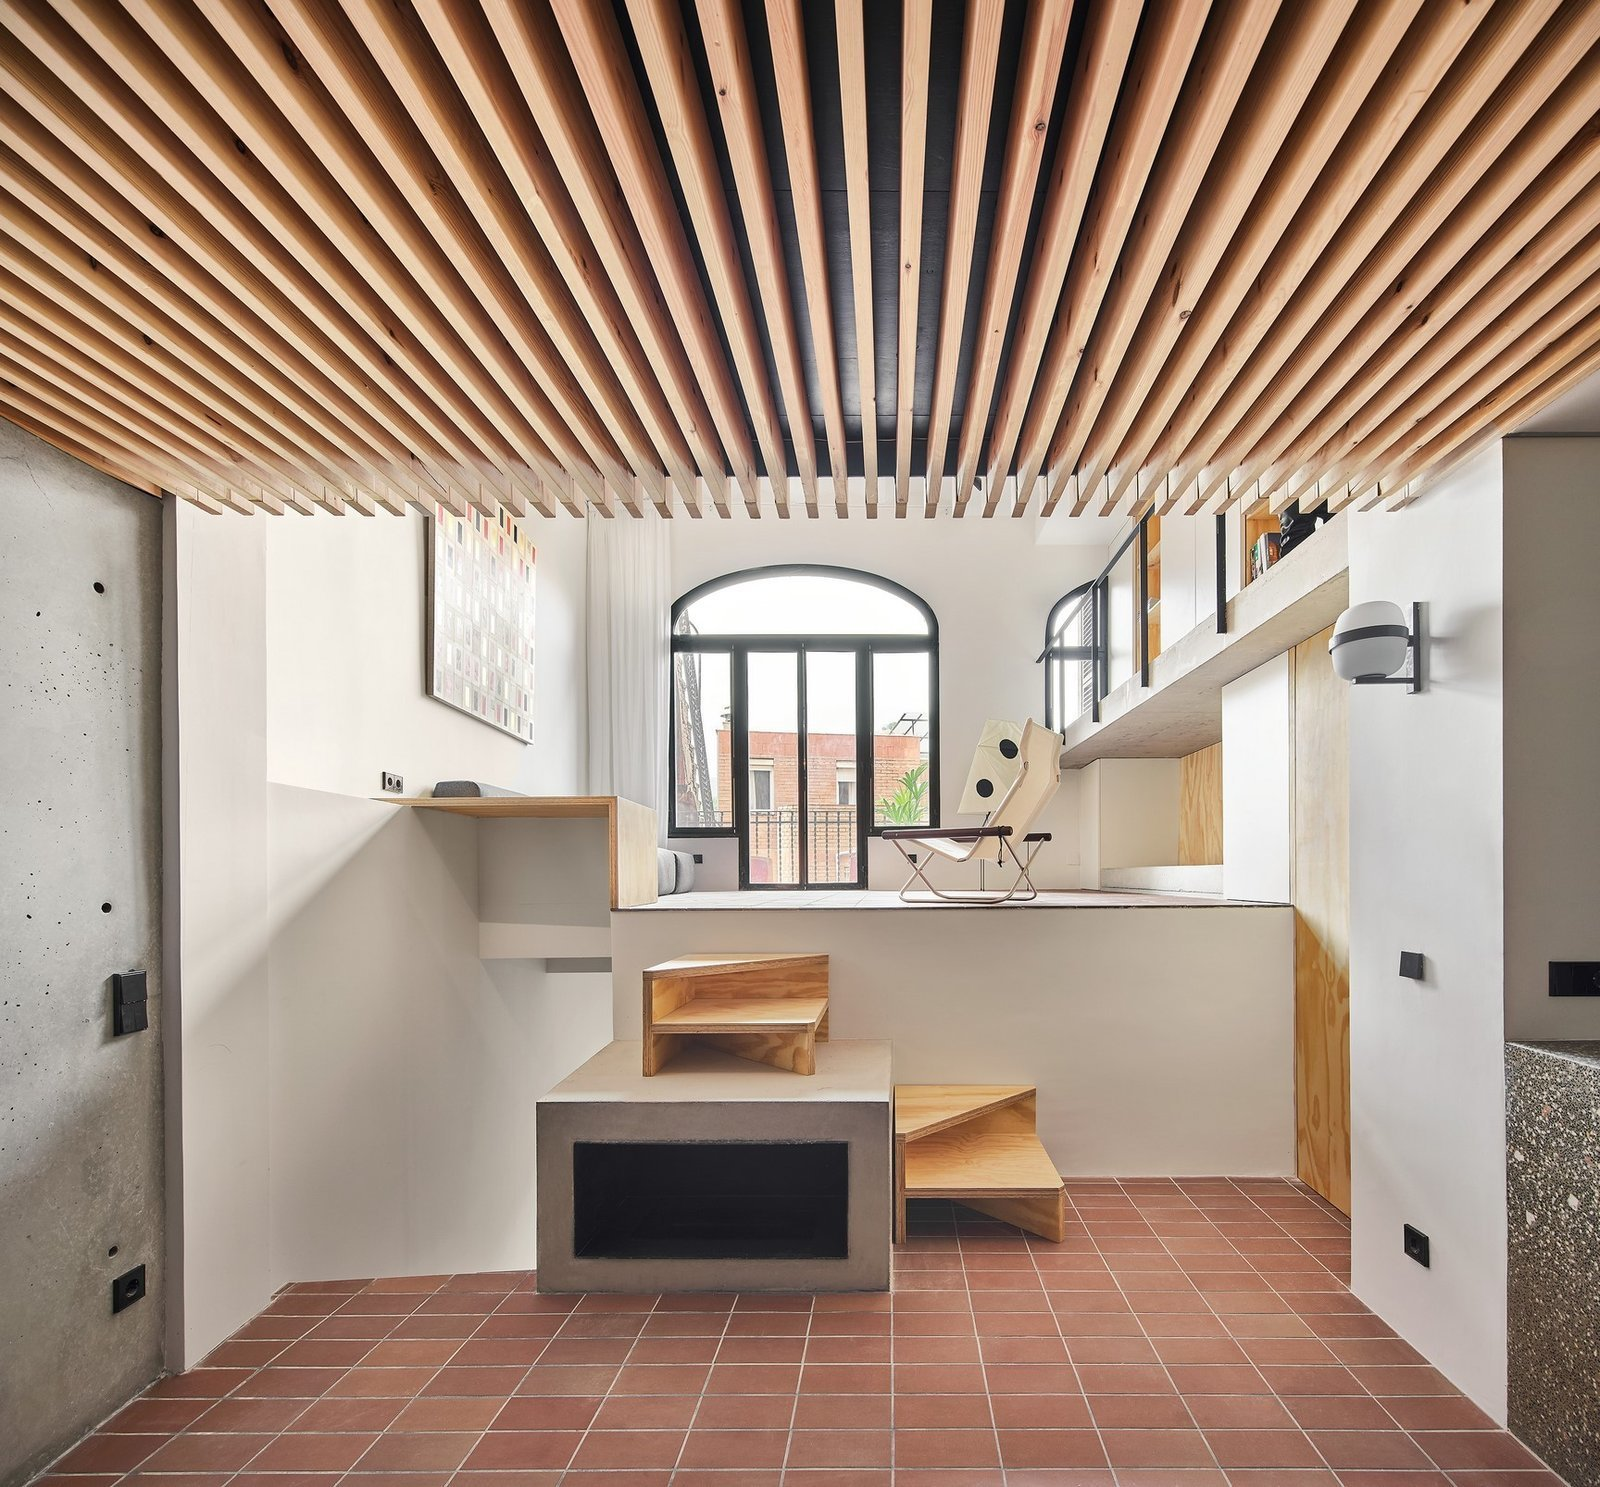 Kitchen, Ceramic Tile Floor, and Wall Lighting  Photo 8 of 15 in A Renovation Turns a Once-Abandoned Barcelona Building Into an Airy Home